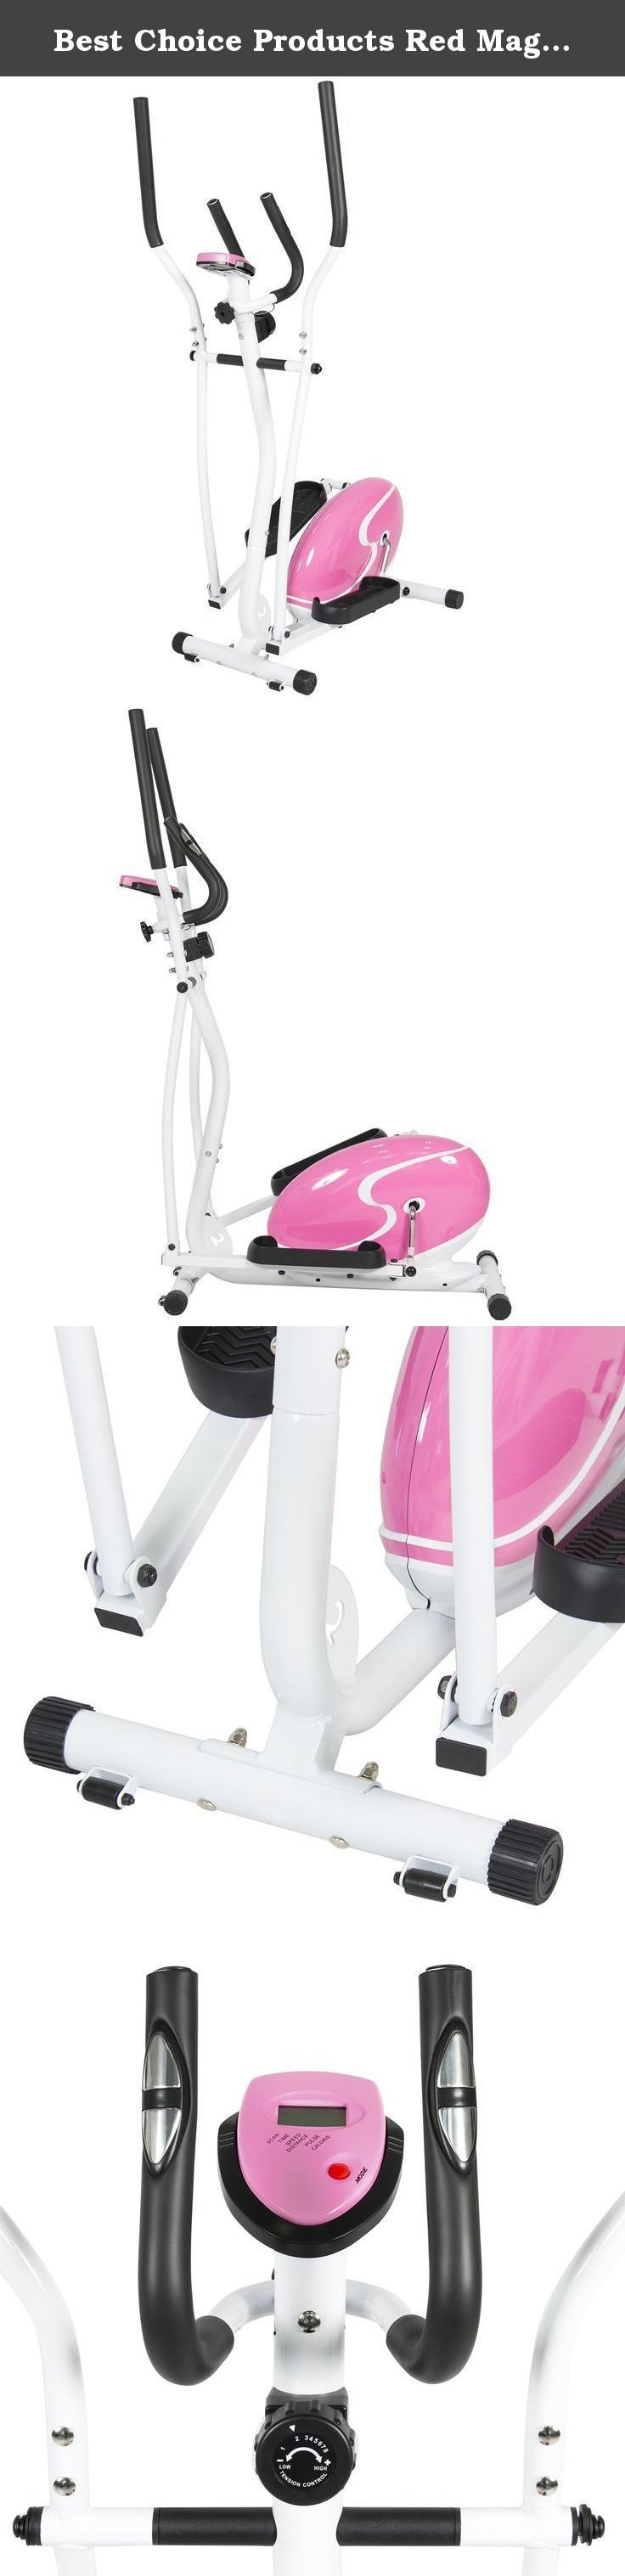 Best Choice Products Red Magnetic Elliptical Trainer Fitness Space Saver Machine Cardio Workout Gym. Best Choice Products is proud to present this brand new Pink Magnetic Elliptical Trainer. This indoor elliptical trainer has an 8-level magnetic tension controller that can help tone your upper and lower body with its low-impact workout design. It features large non-slip platforms for your feet as you work out and exercise. Constructed with a steel frame, it can support up to 220 lbs....